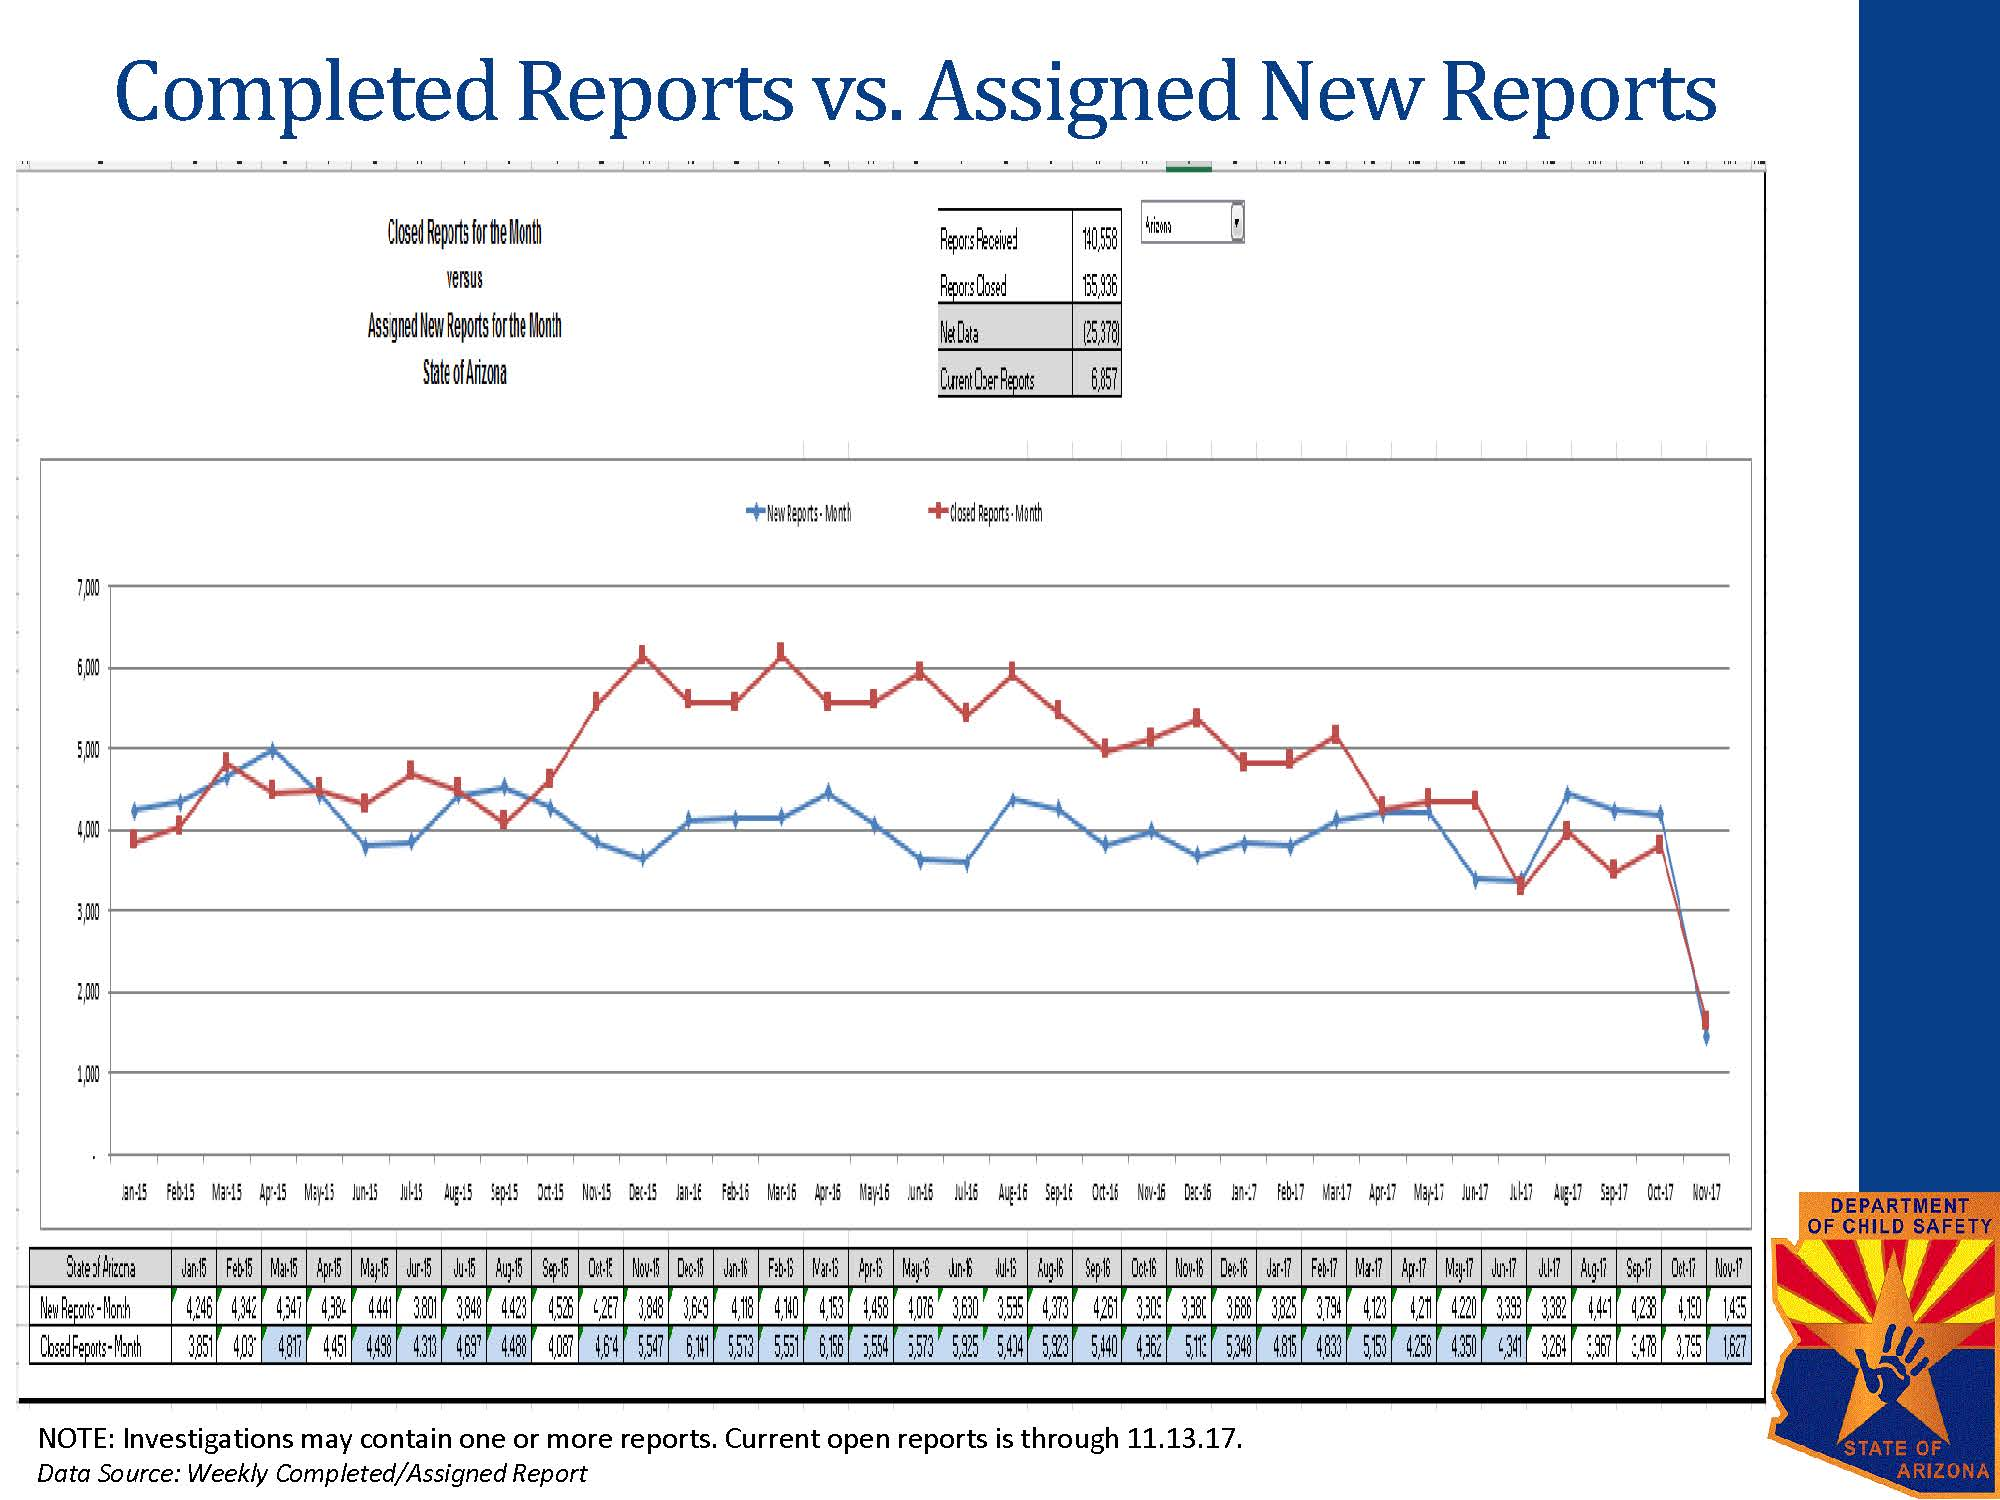 Completed Reports vs. Assigned New Reports